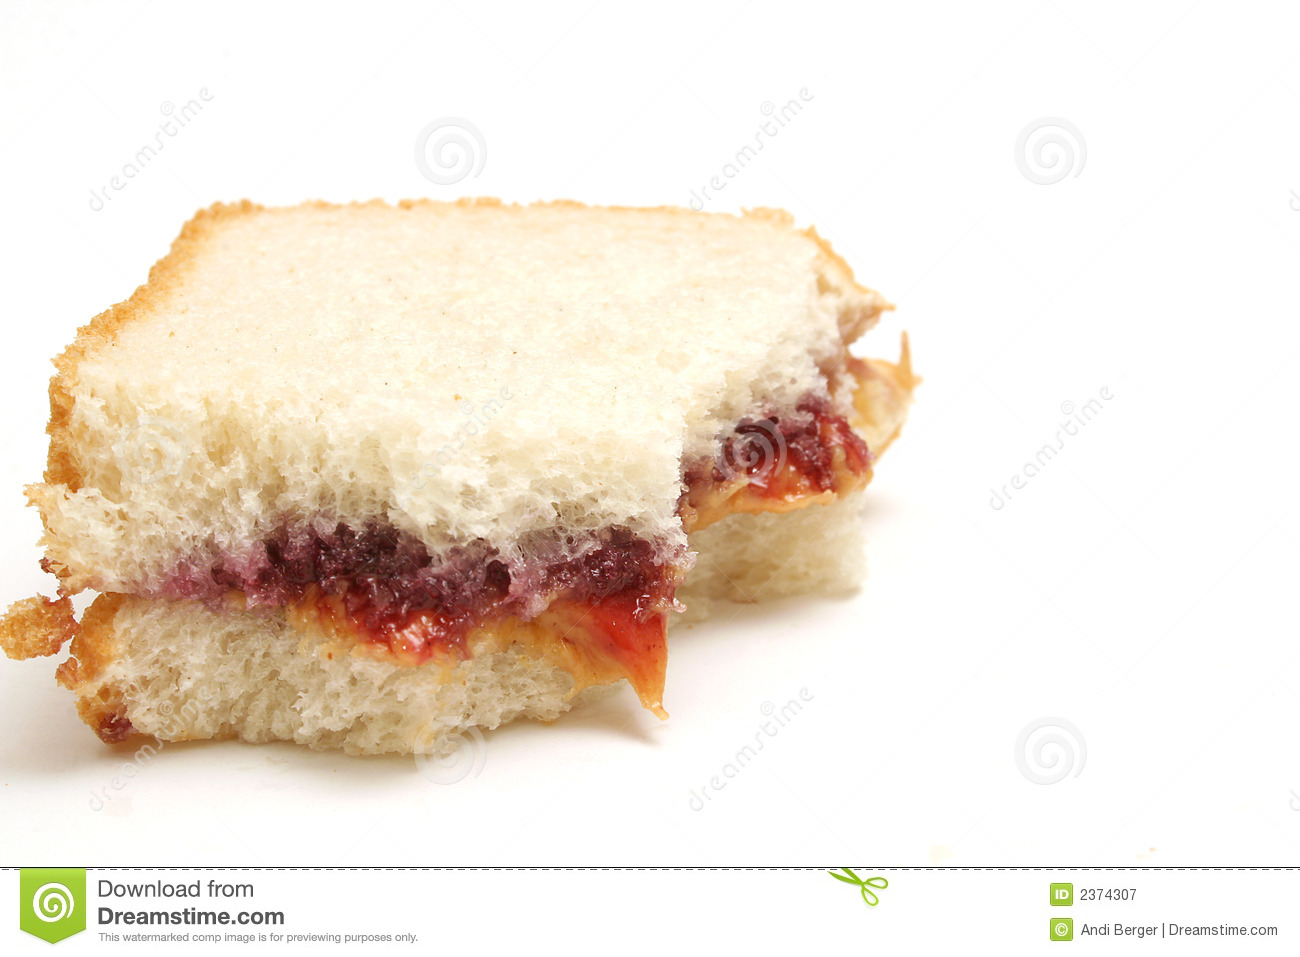 Isolated photo of a peanut butter and jelly sandwich half eaten on white